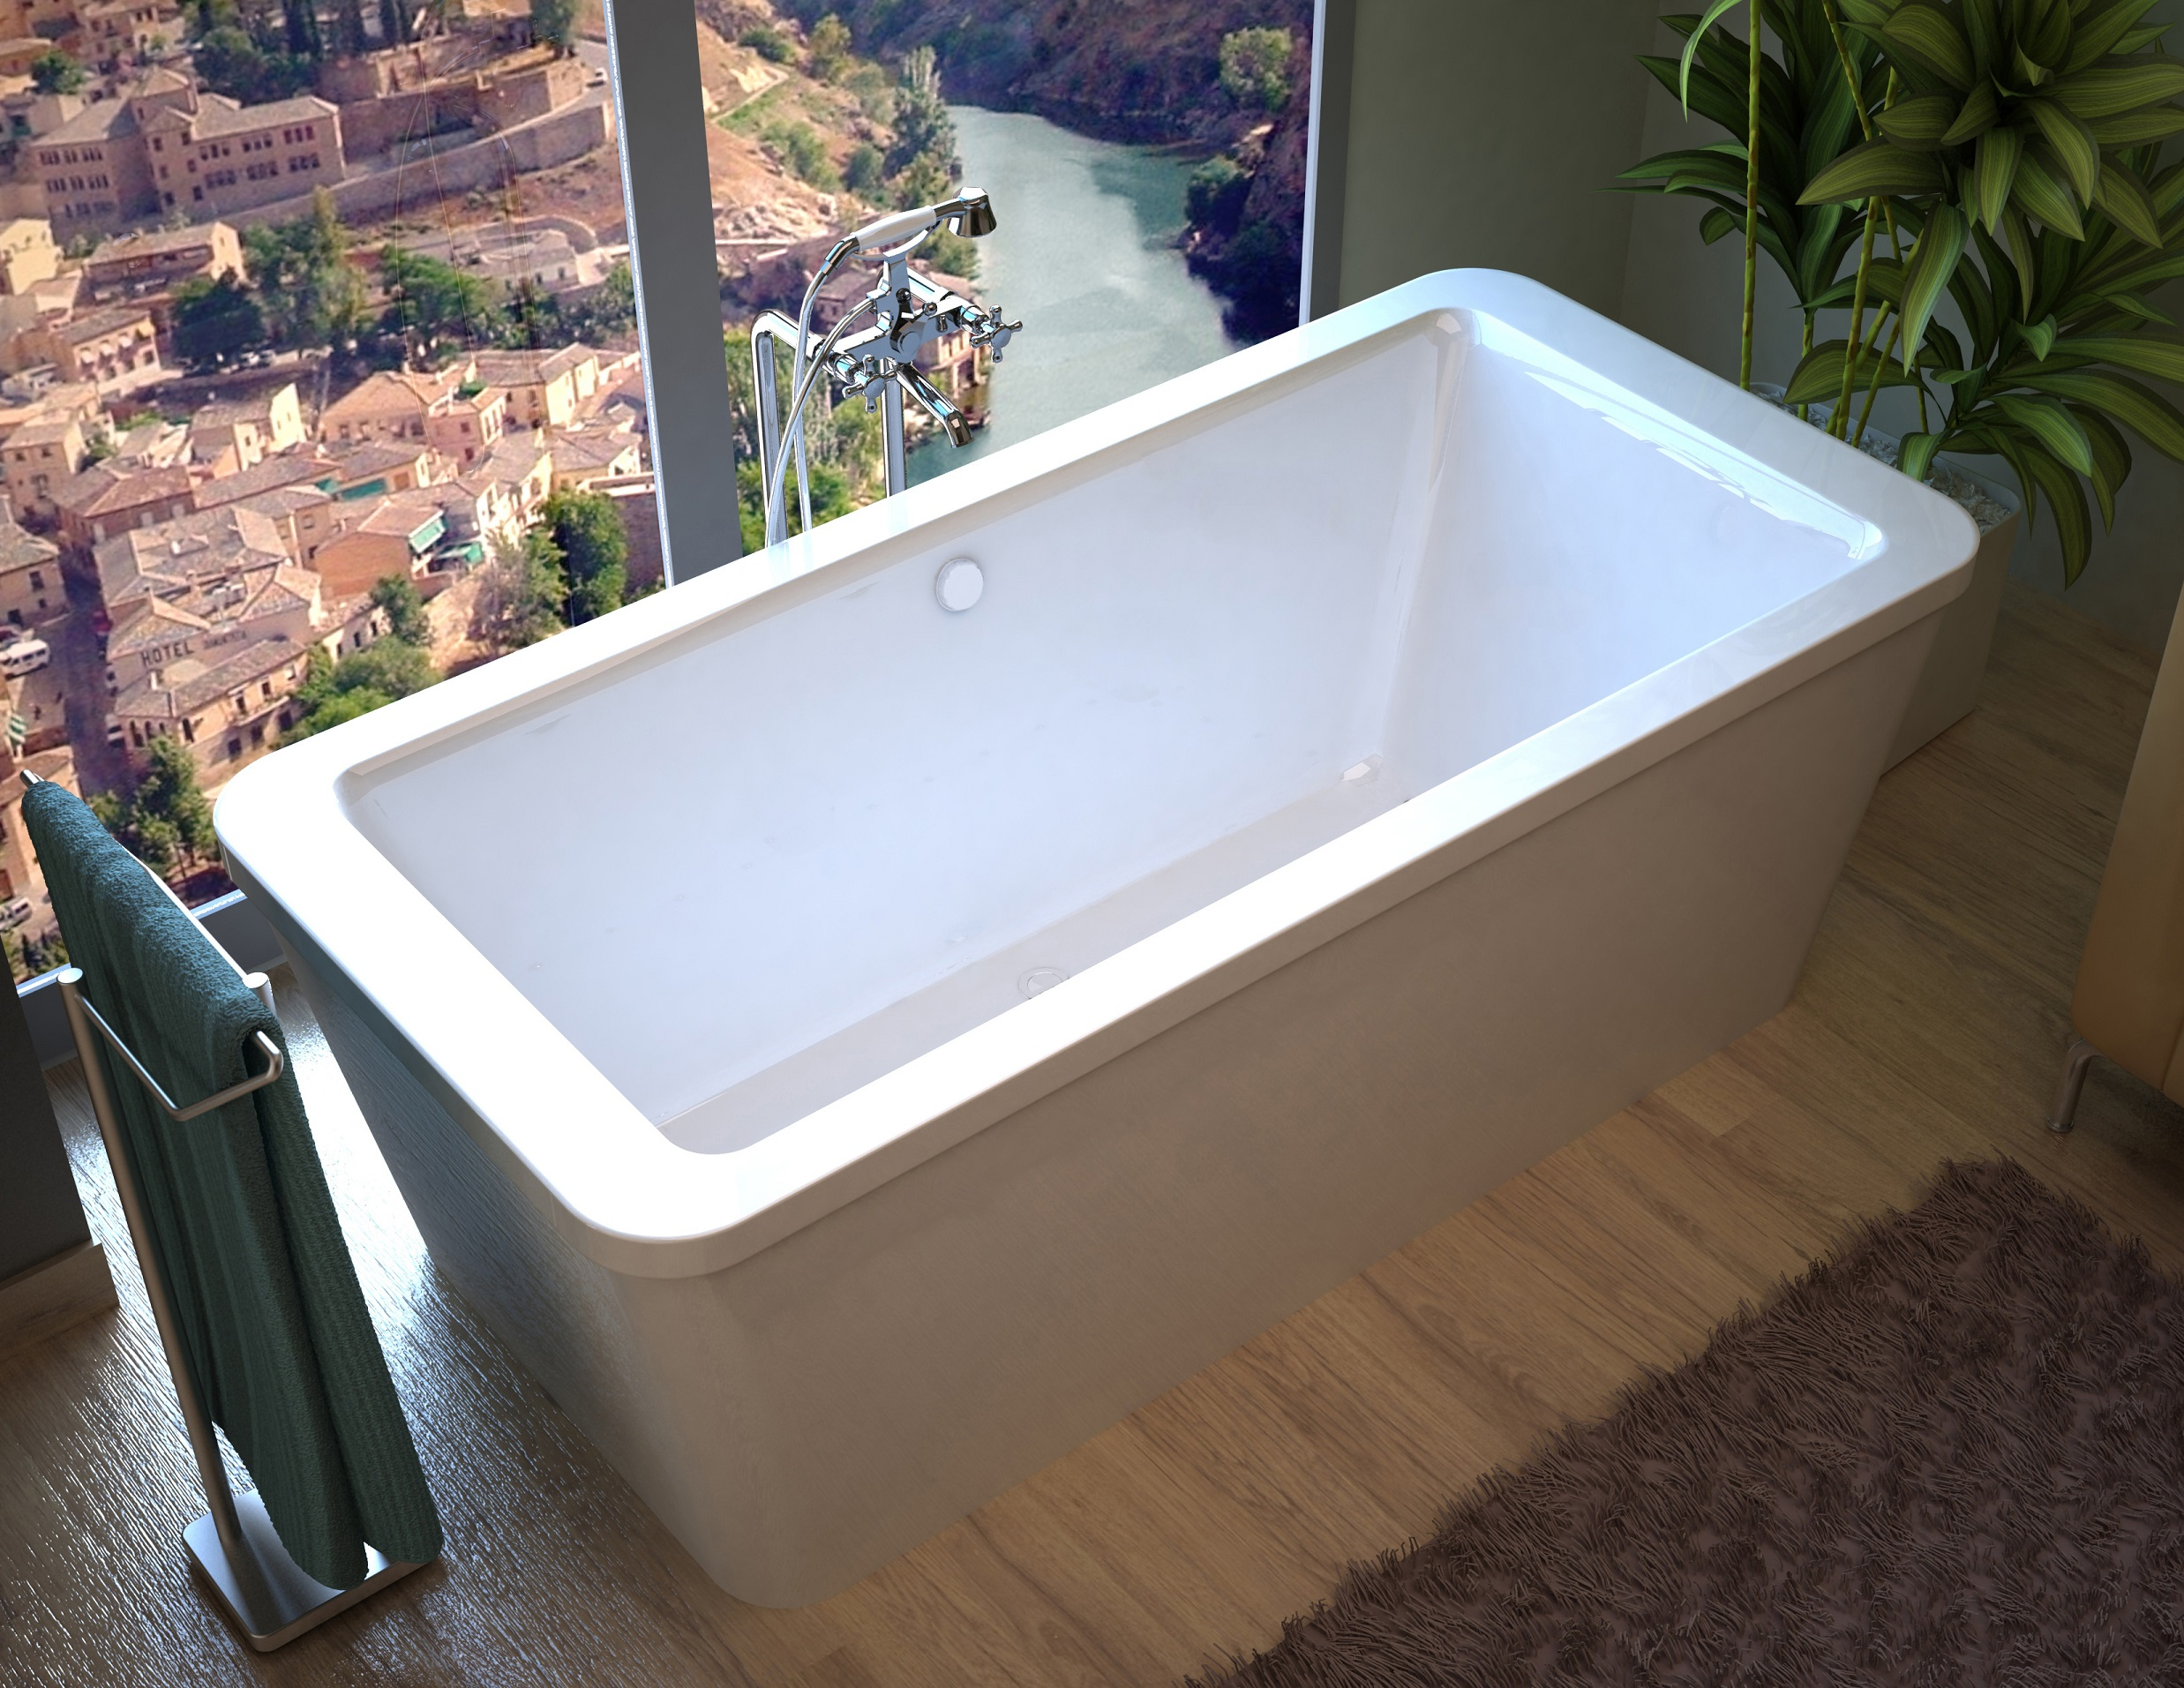 Amusing Rectangular Freestanding Soaking Tub Gallery - Exterior ...